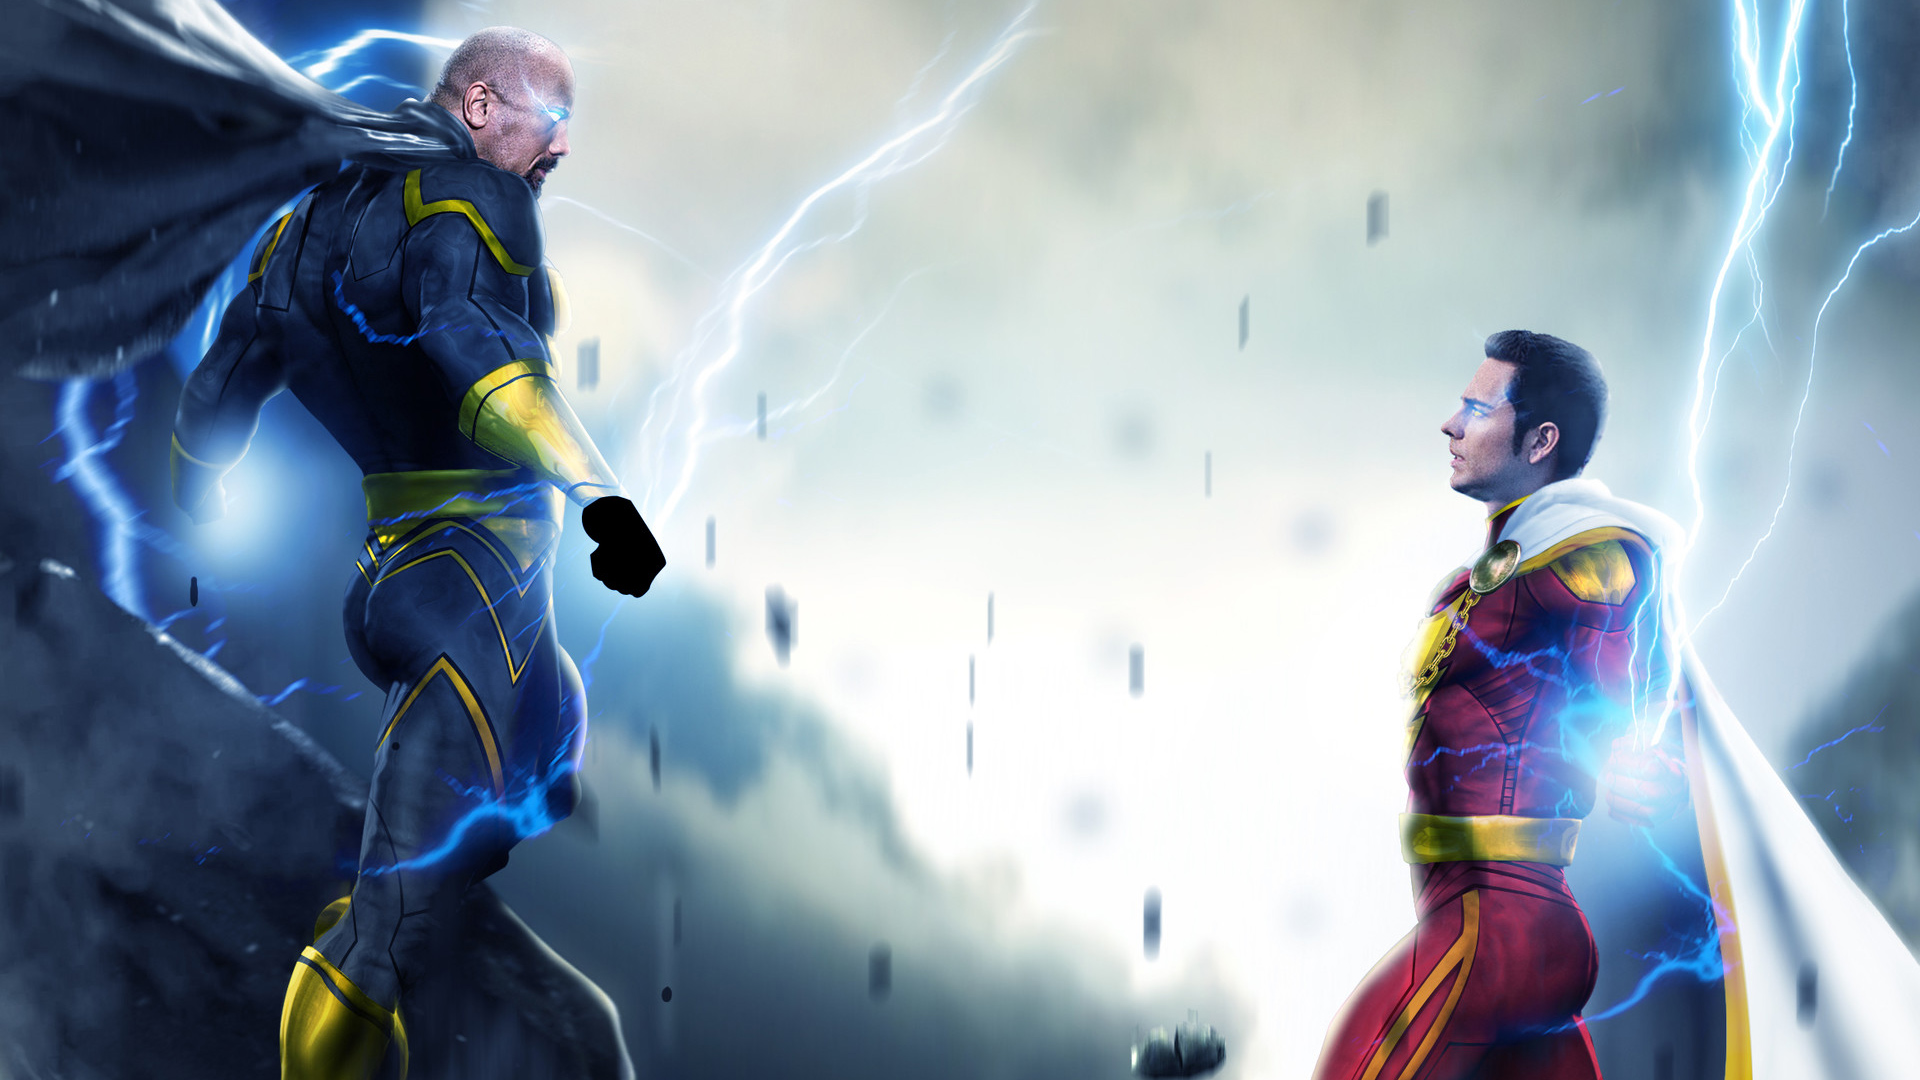 Black Adam And Shazam Hd Superheroes 4k Wallpapers Images